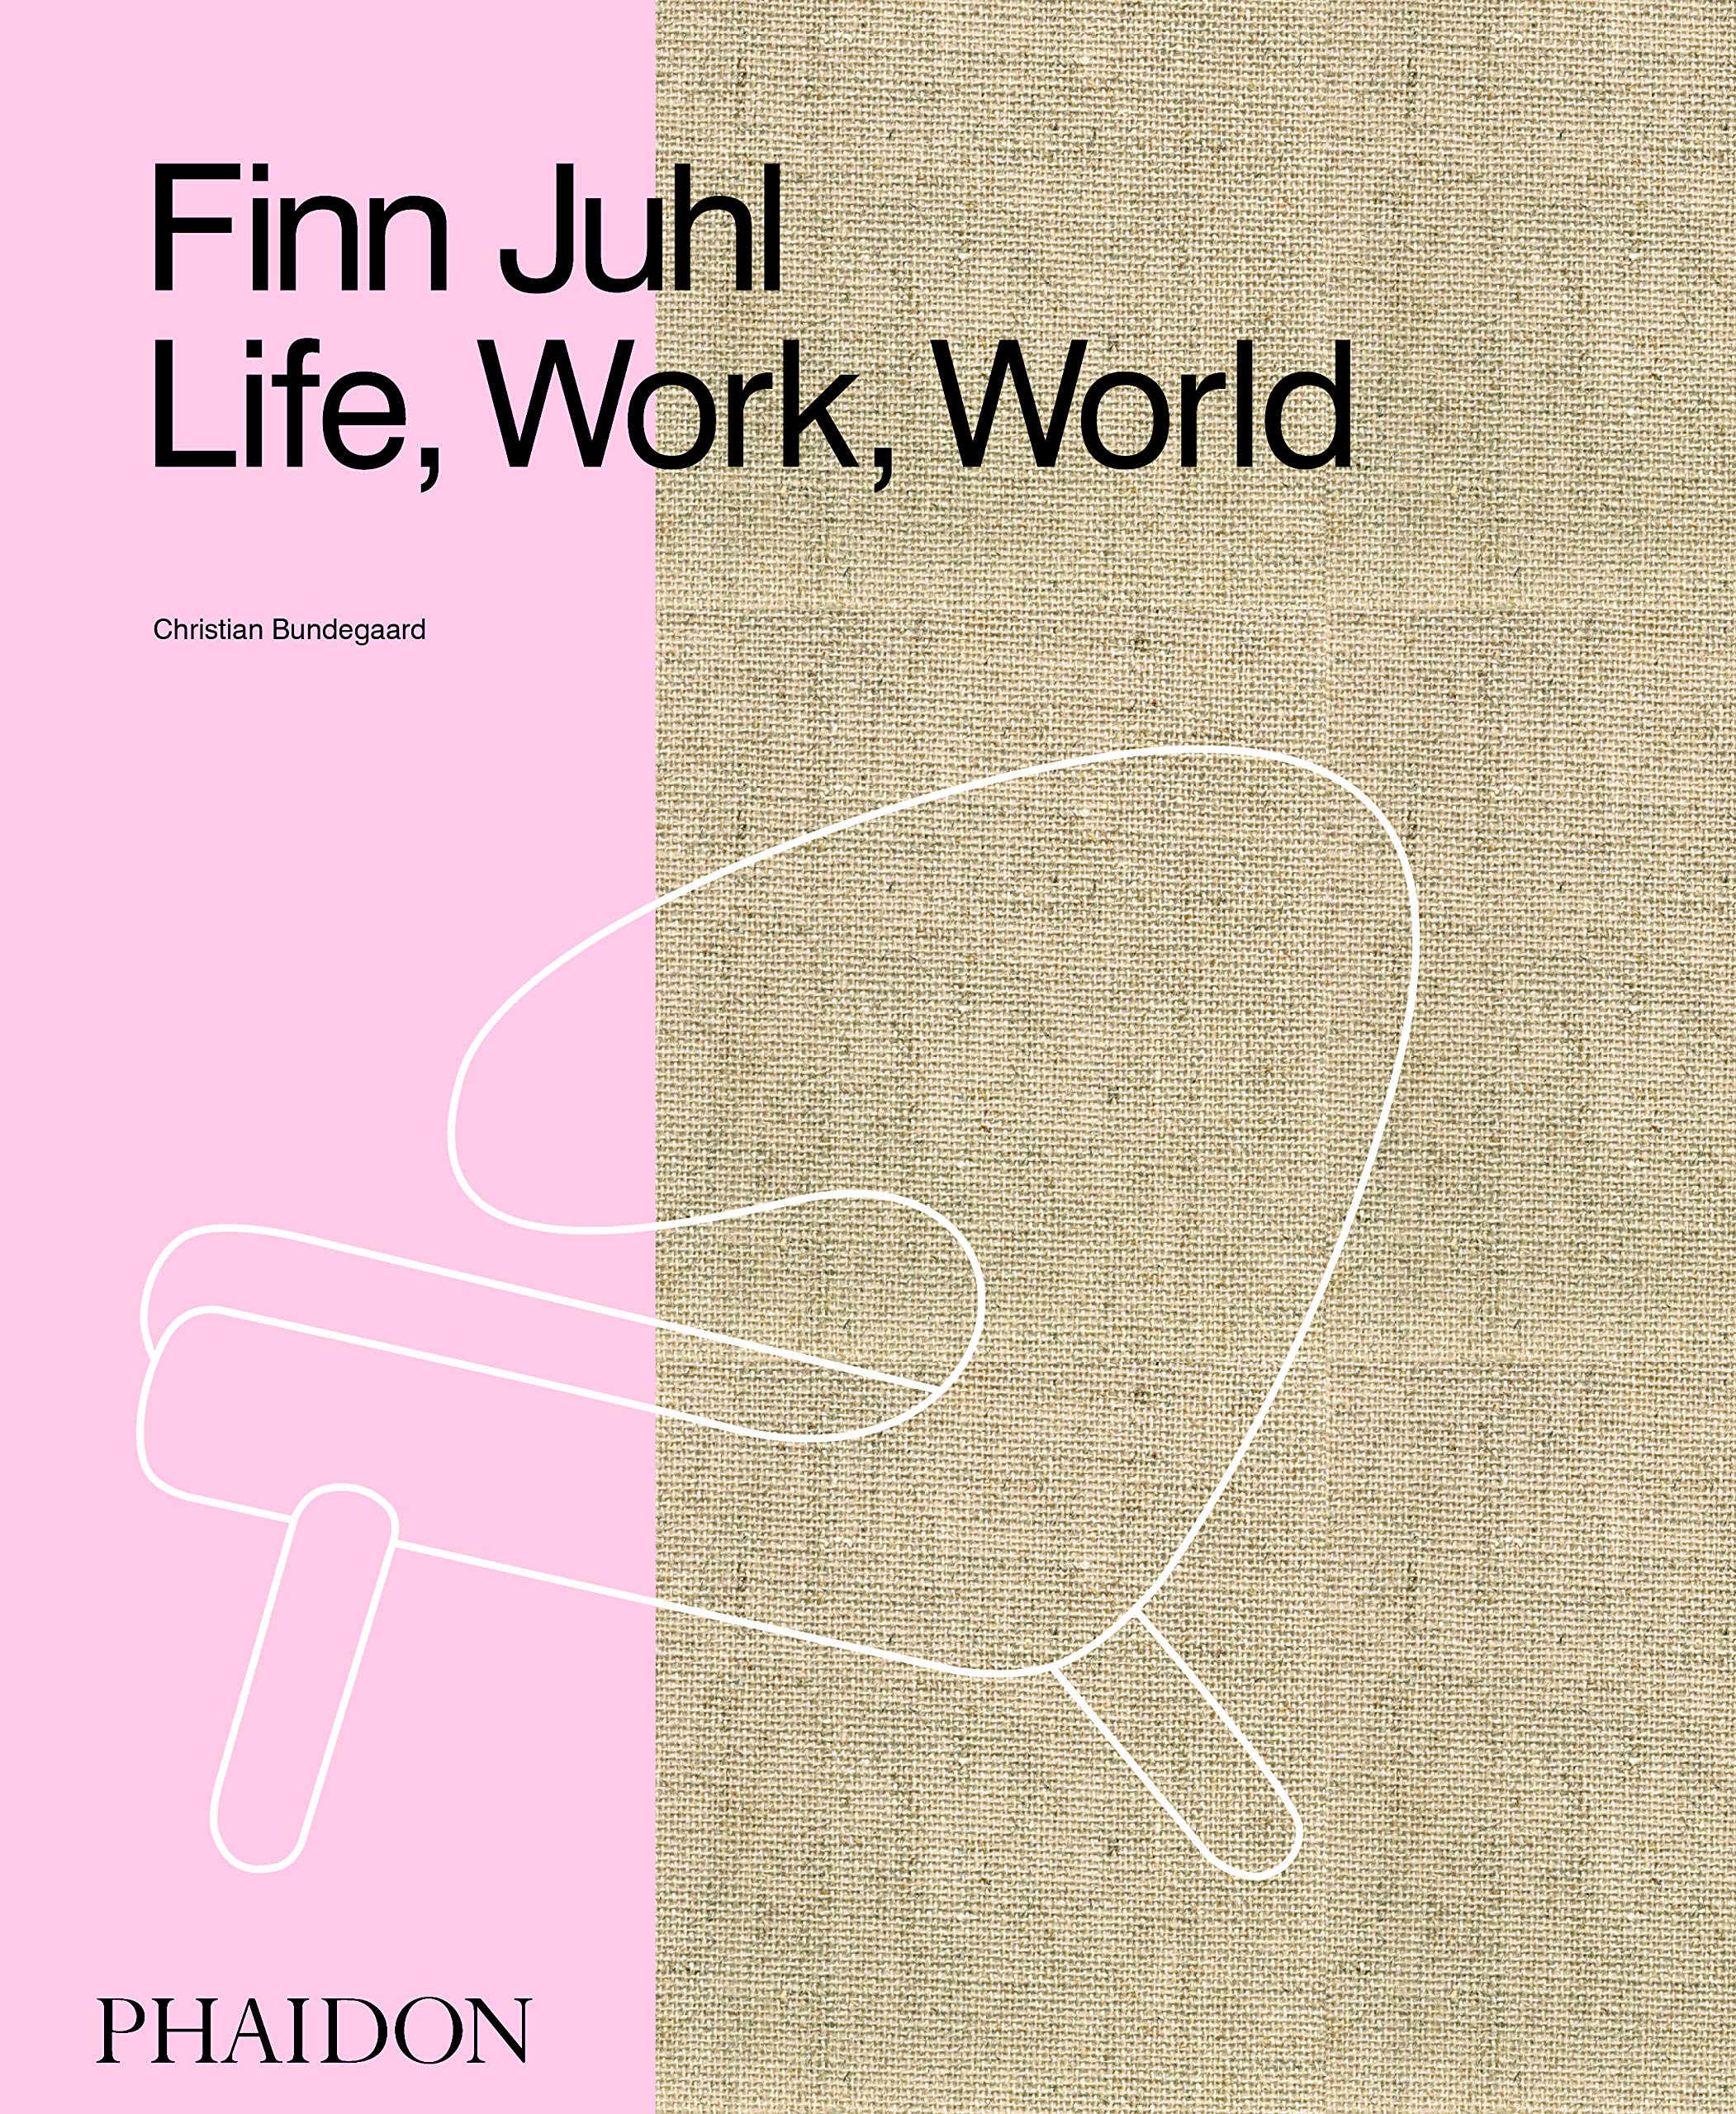 Finn Juhl: Life Work World